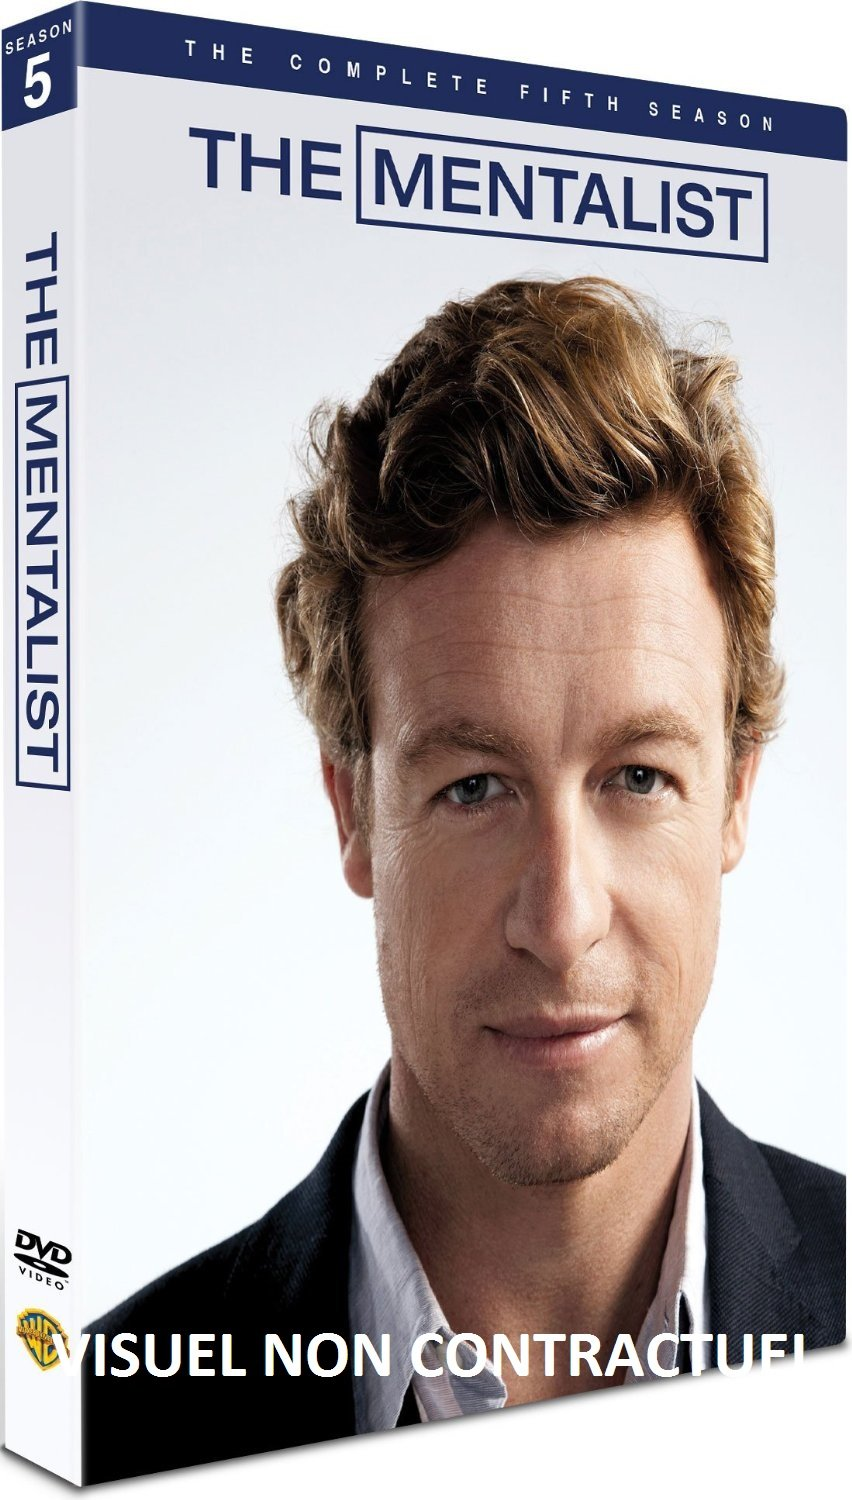 the mentalist saison 5 مترجم عربي 71NjgYQtXPL._SL1500_